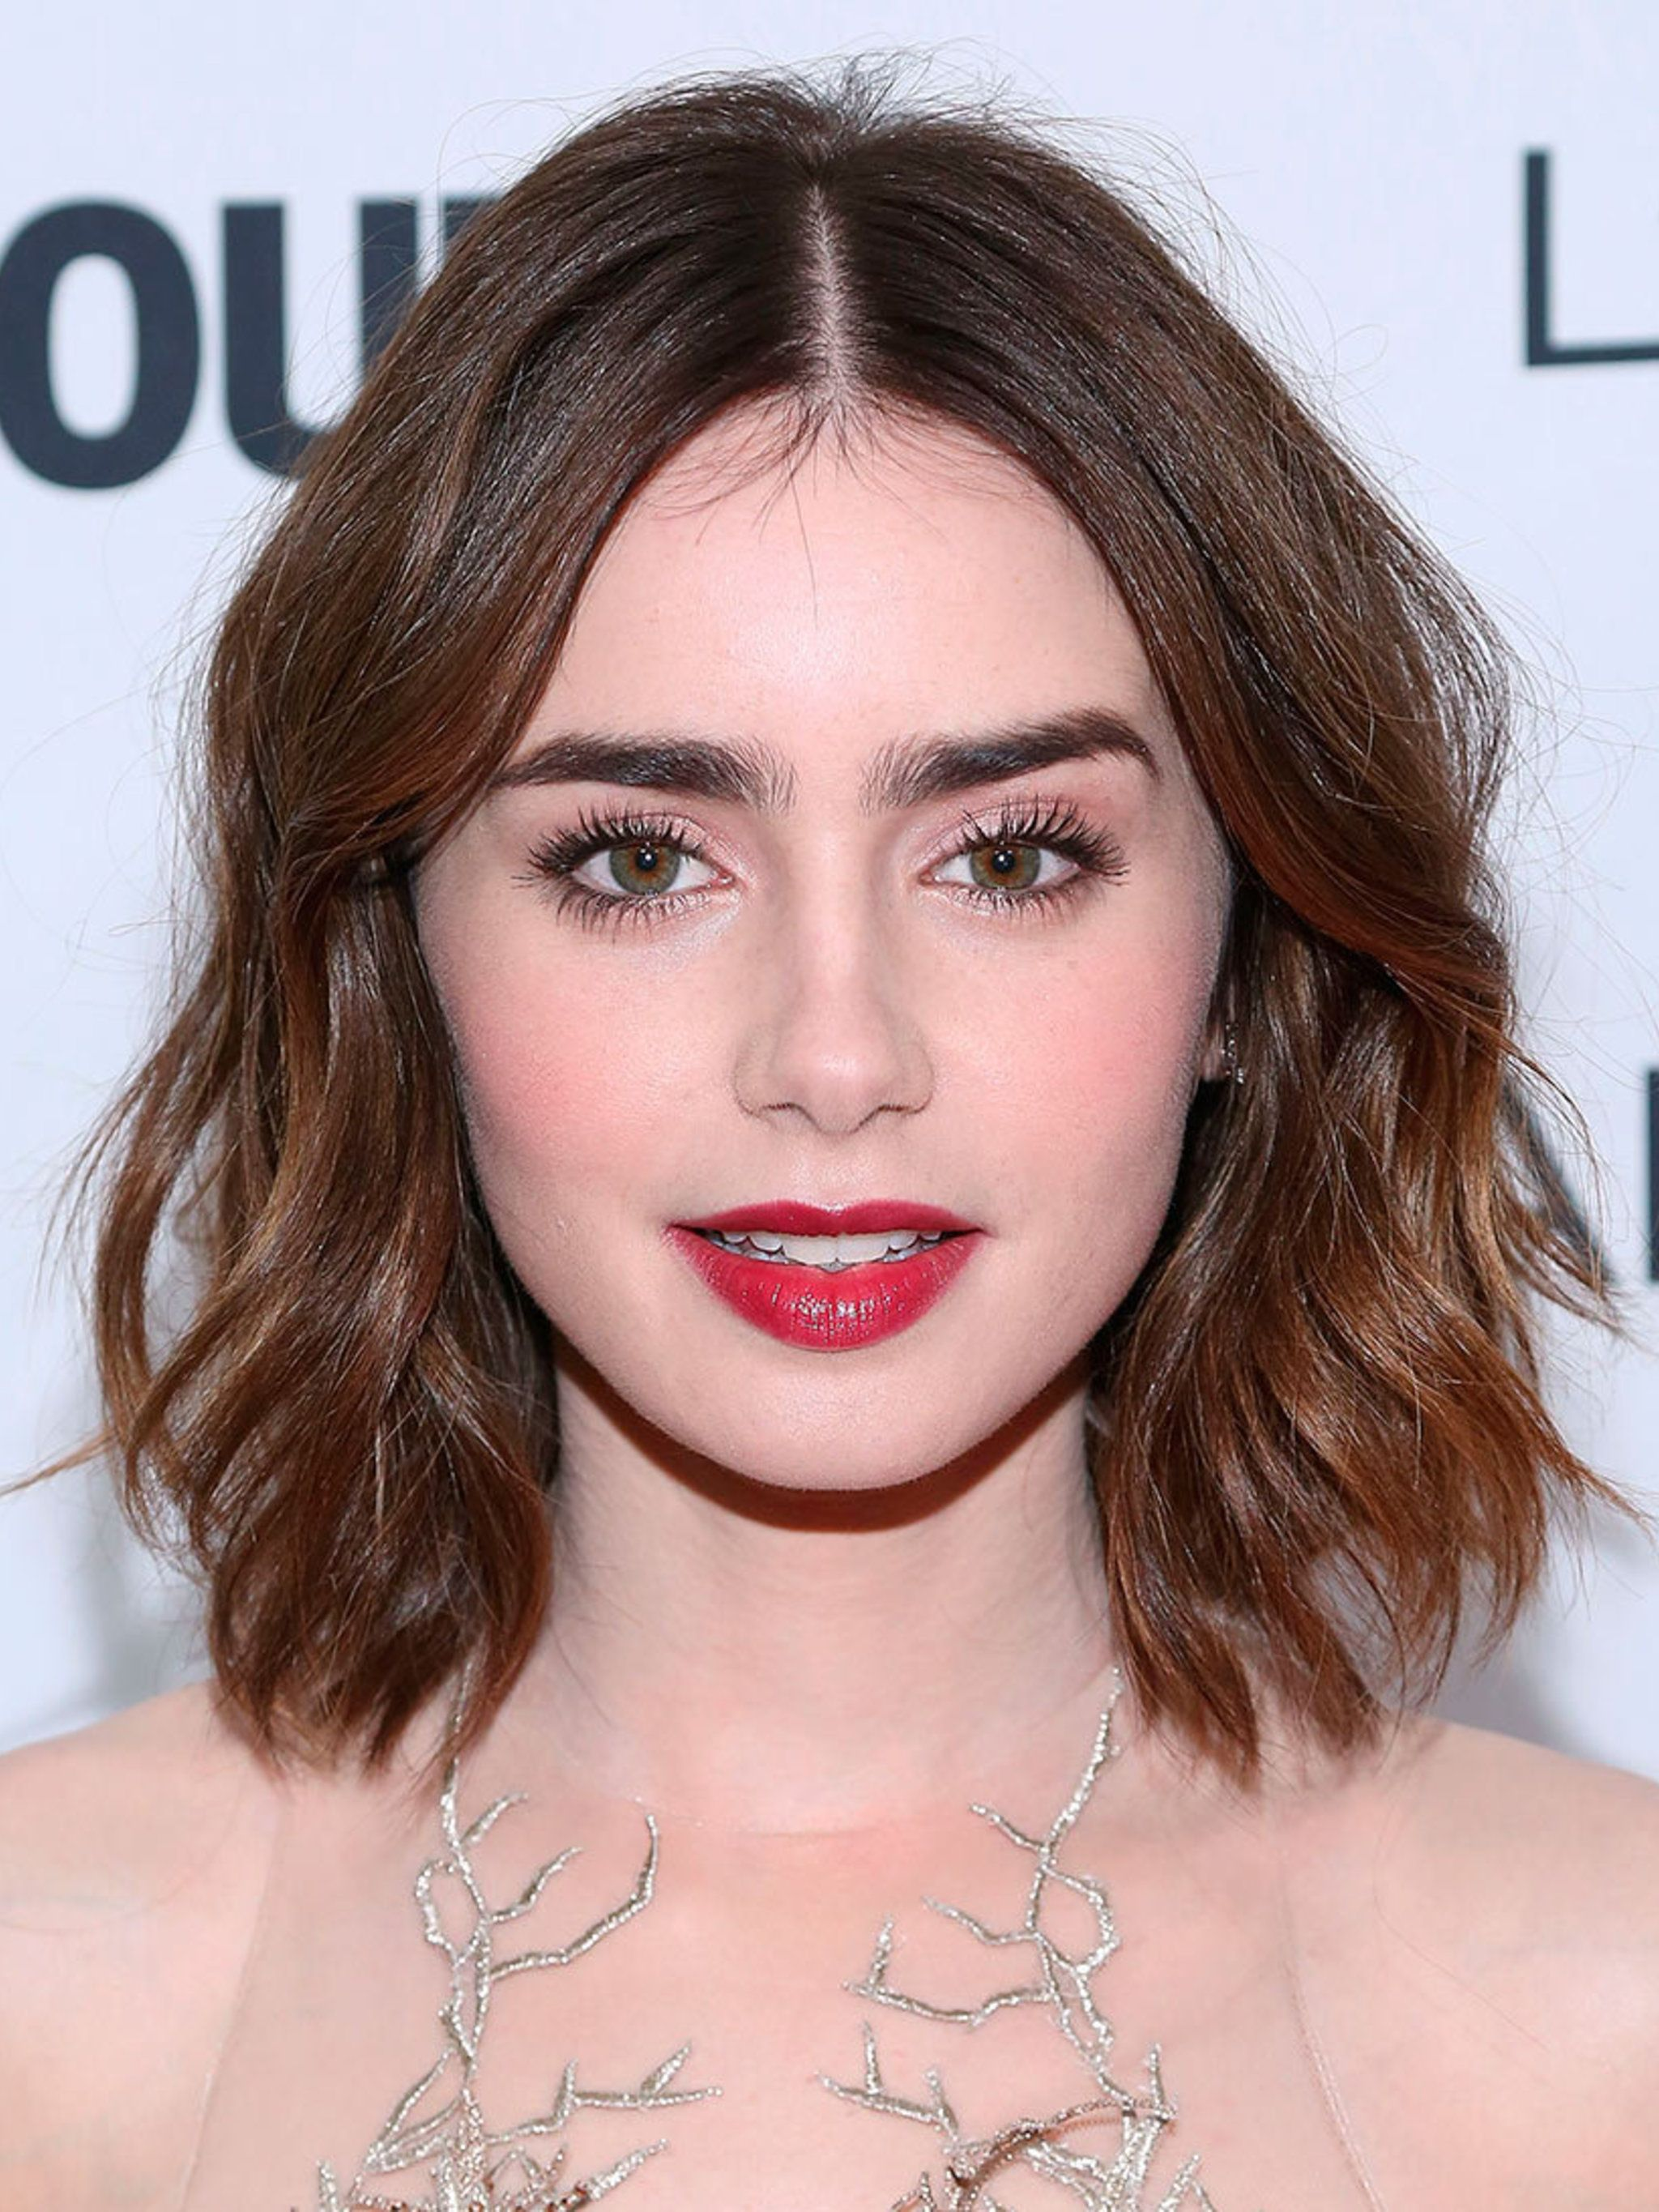 Best Celebrity Eyebrows The Celebs With Perfect Eyebrows For All